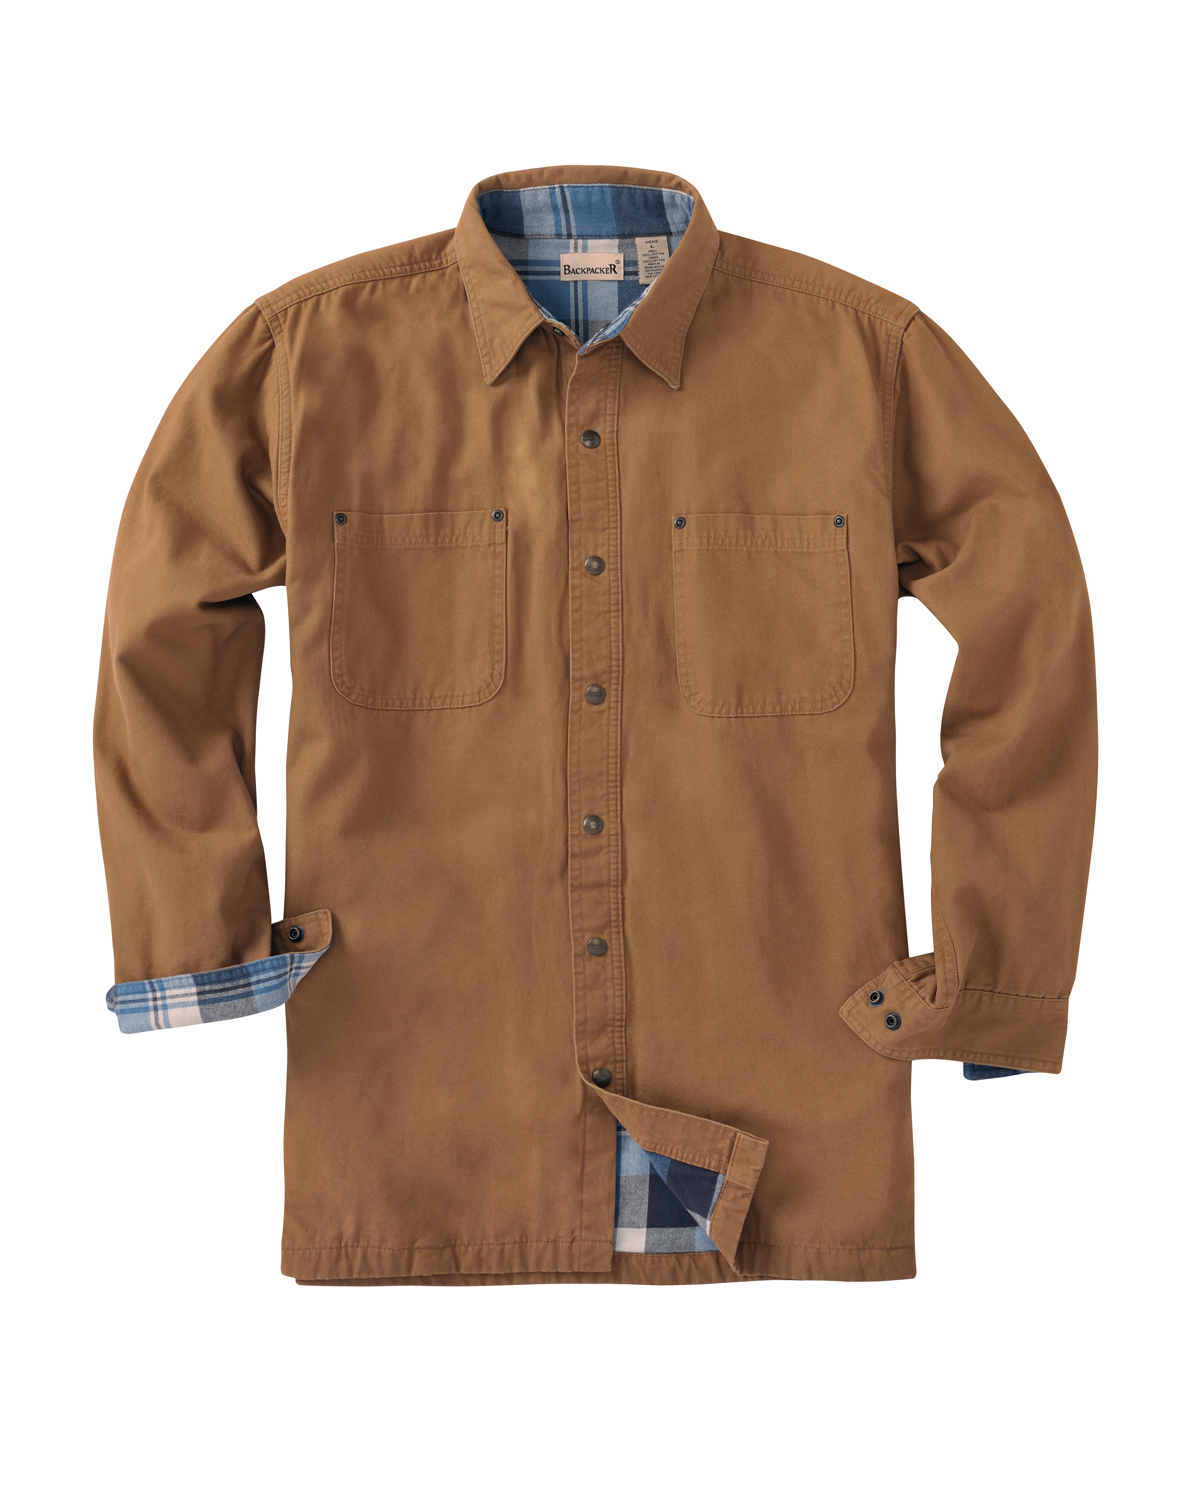 Men's Tall Canvas Shirt Jacket with Flannel Lining